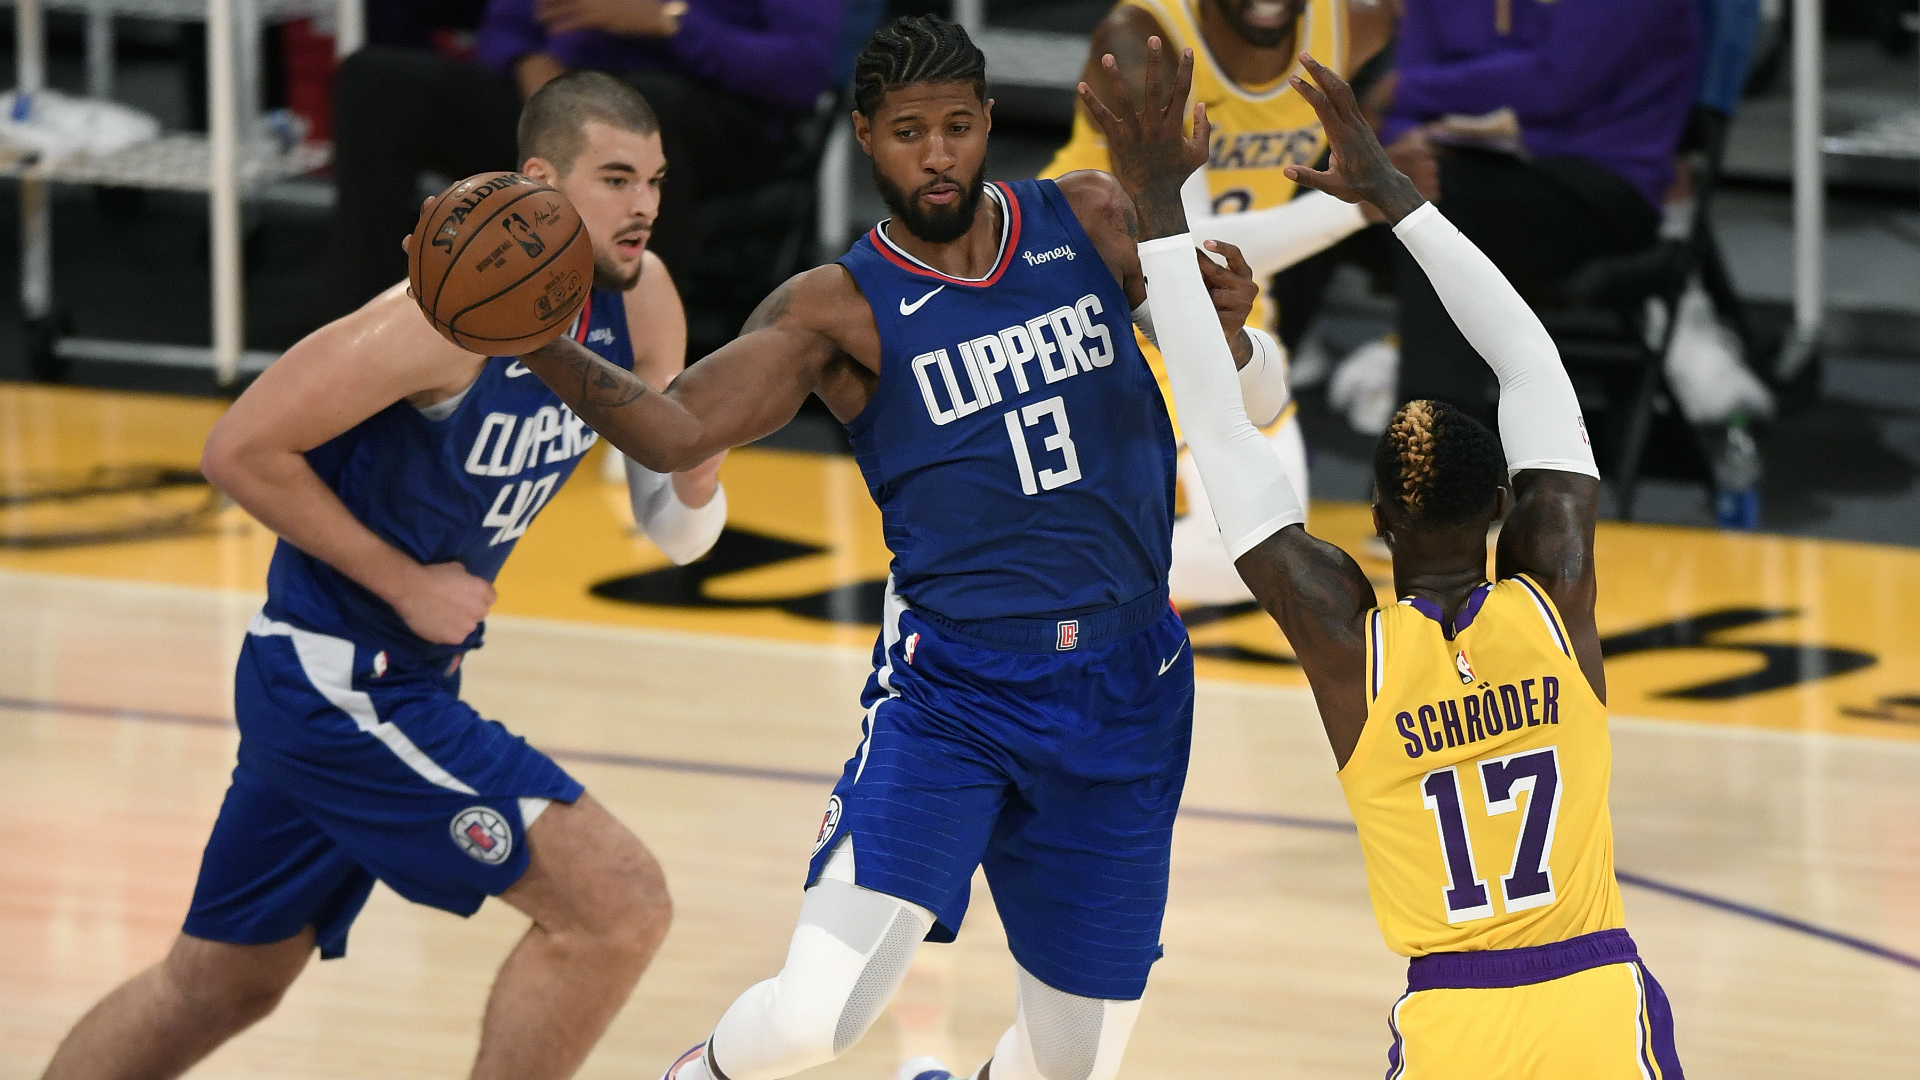 George and Kawhi lead Clippers past LeBron's Lakers in season opener